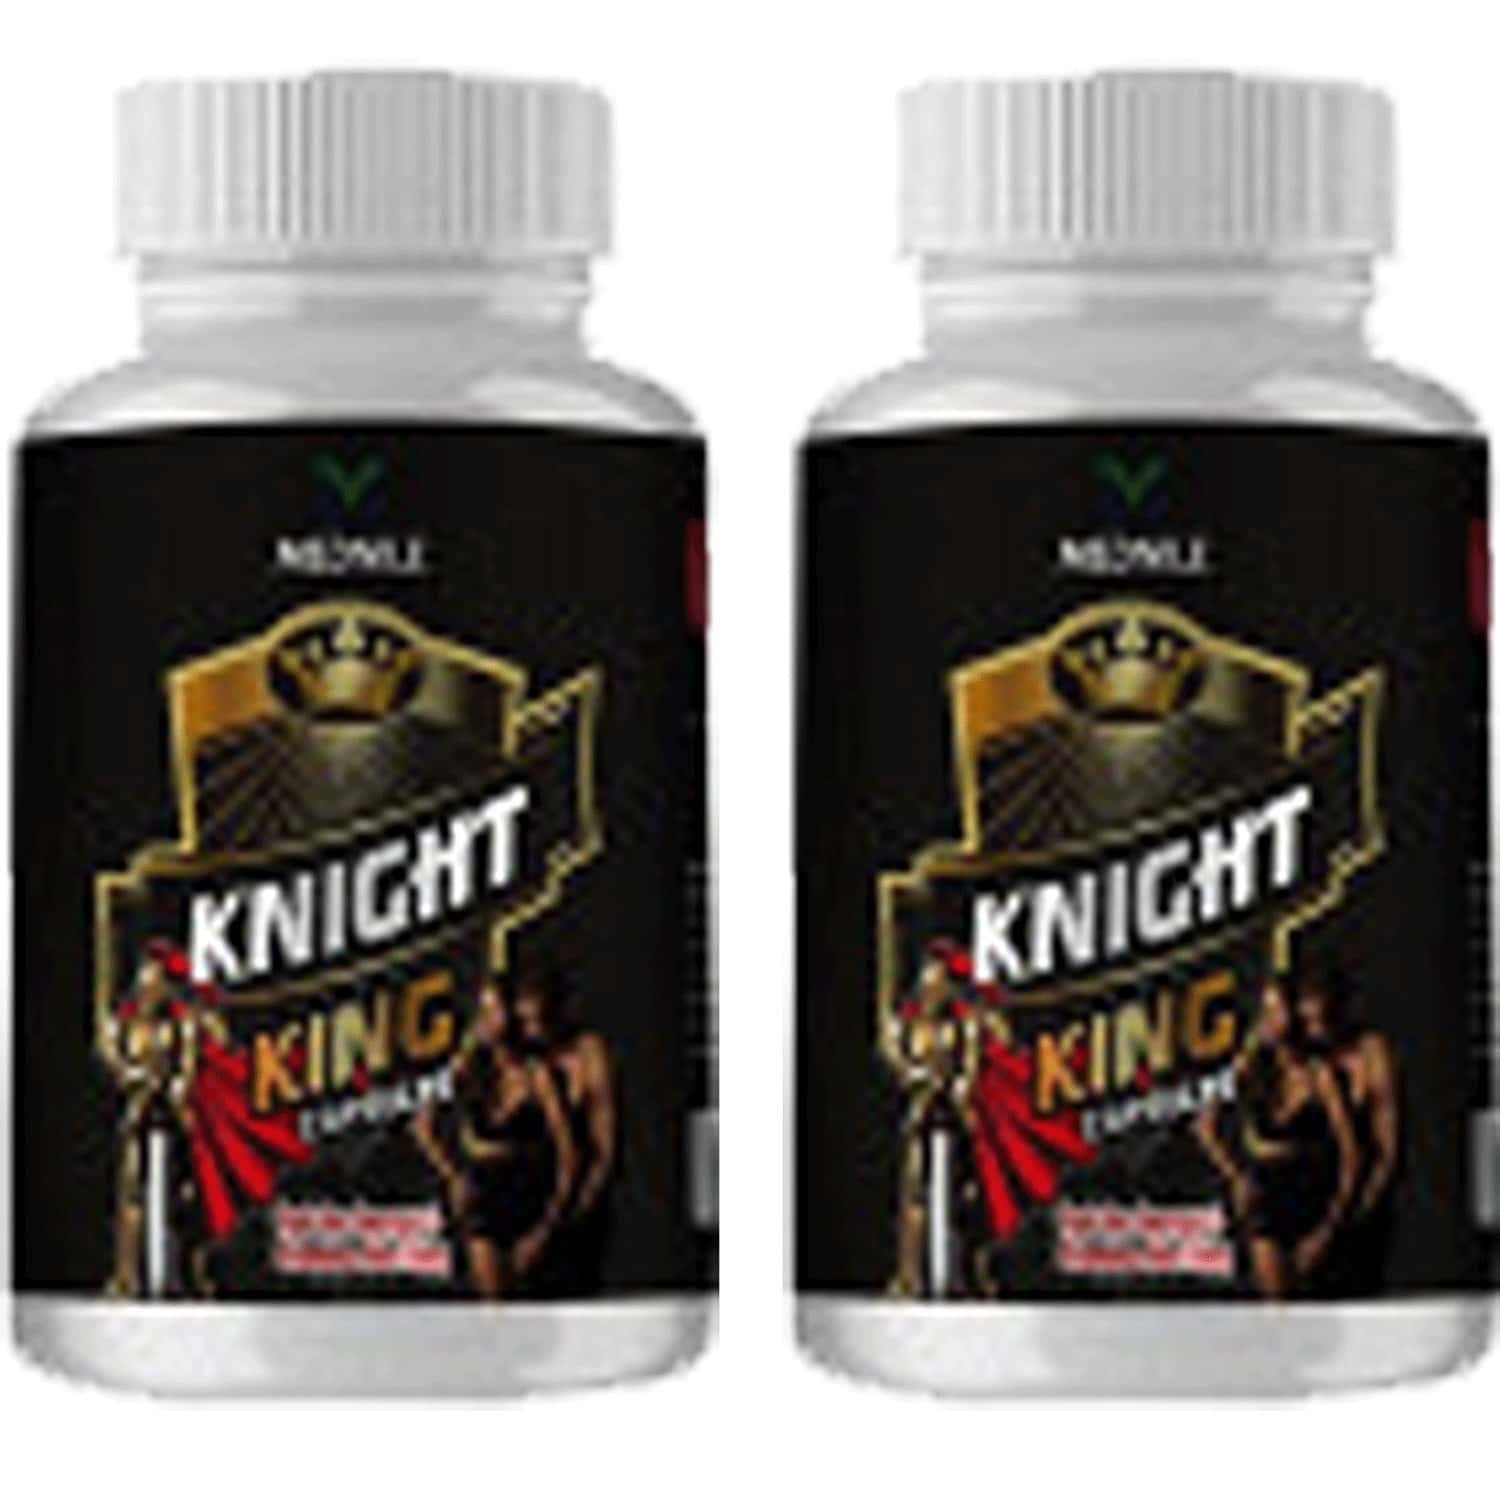 Mednile Knight King Capsule {buy 2 Get 1 Free}(60caps Pack Of 2)physical Strength And Stamina In Men